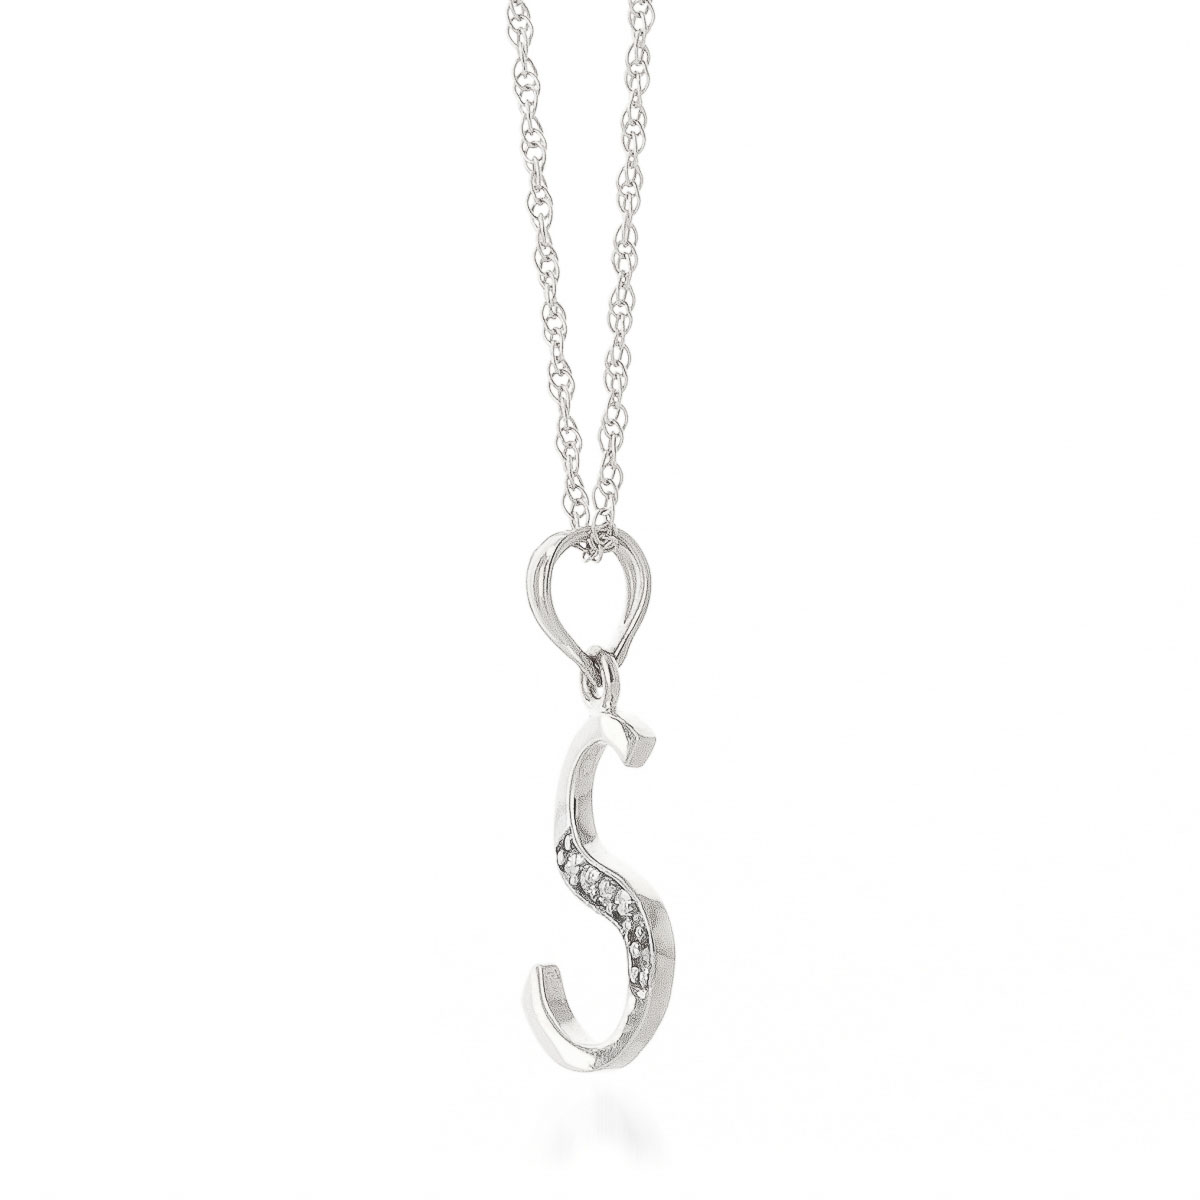 Diamond letter initial s pendant necklace in 9ct white gold 5632w diamond letter initial s pendant necklace in 9ct white gold aloadofball Choice Image